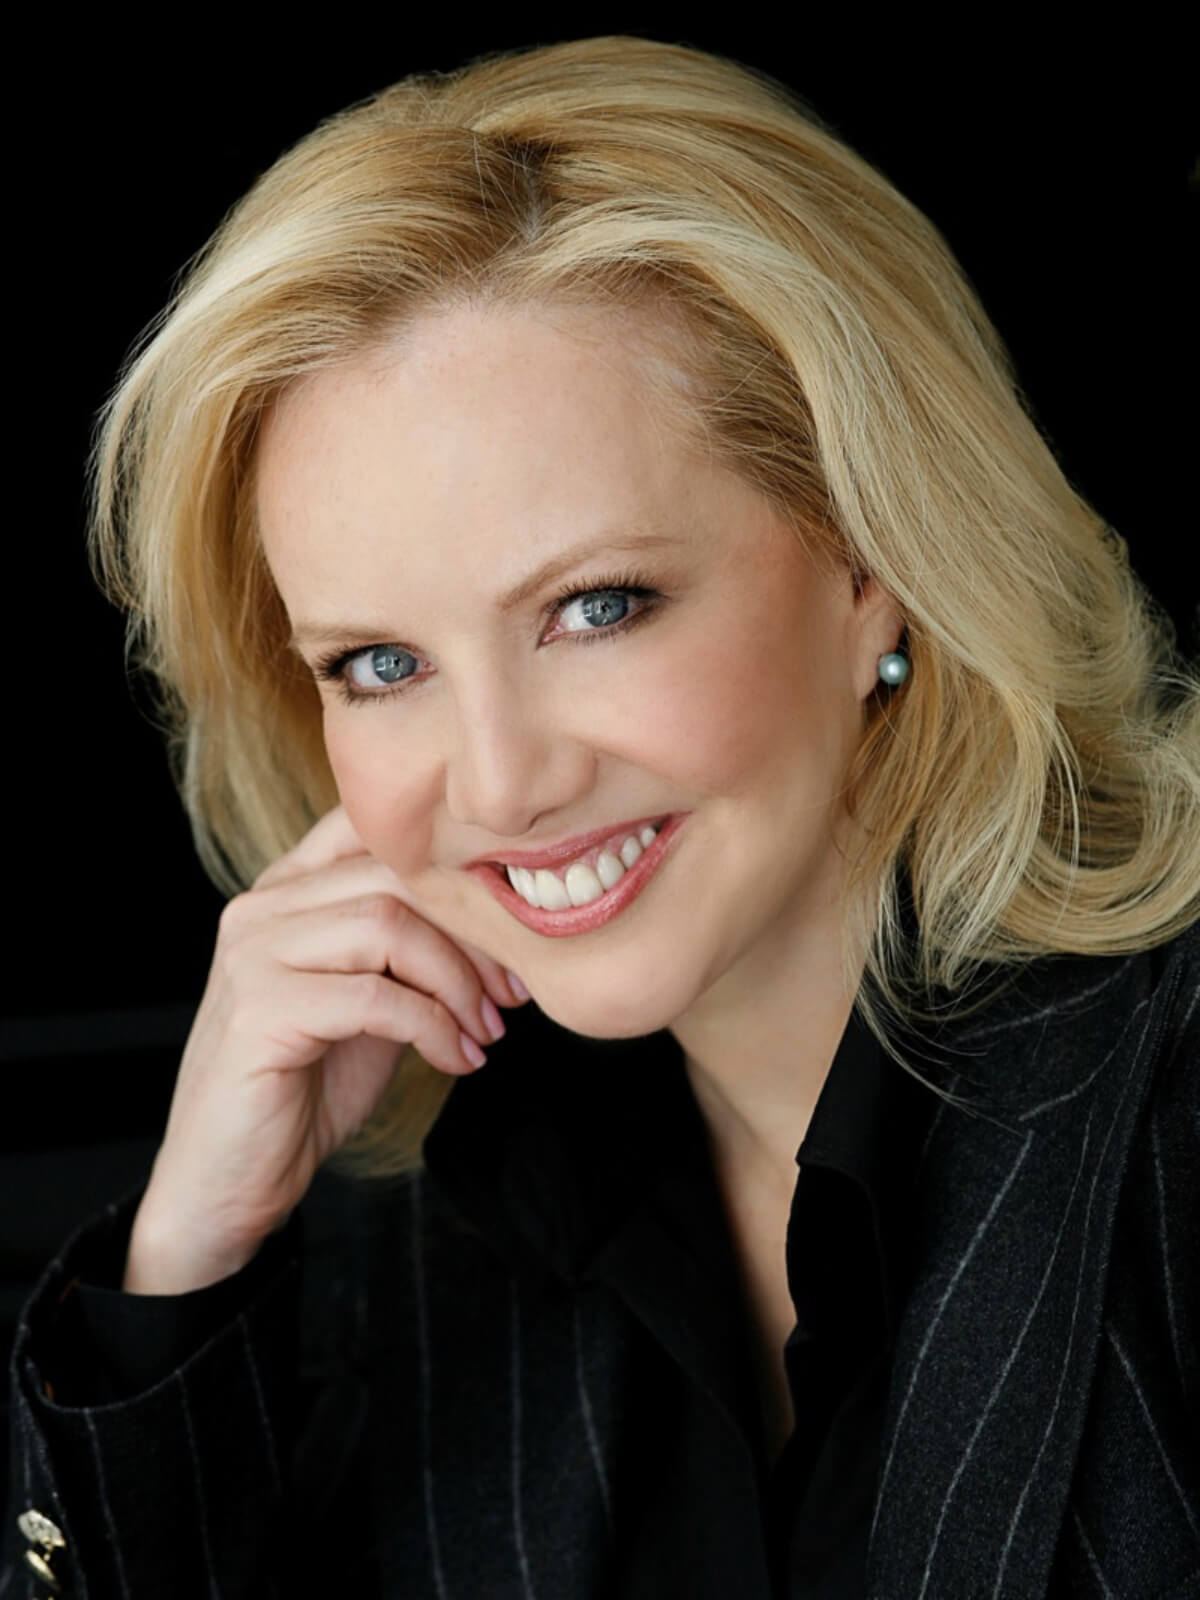 Headshot of Susan Stroman. She is wearing a pinstriped black suit smiling to camera with head resting on upstage hand.